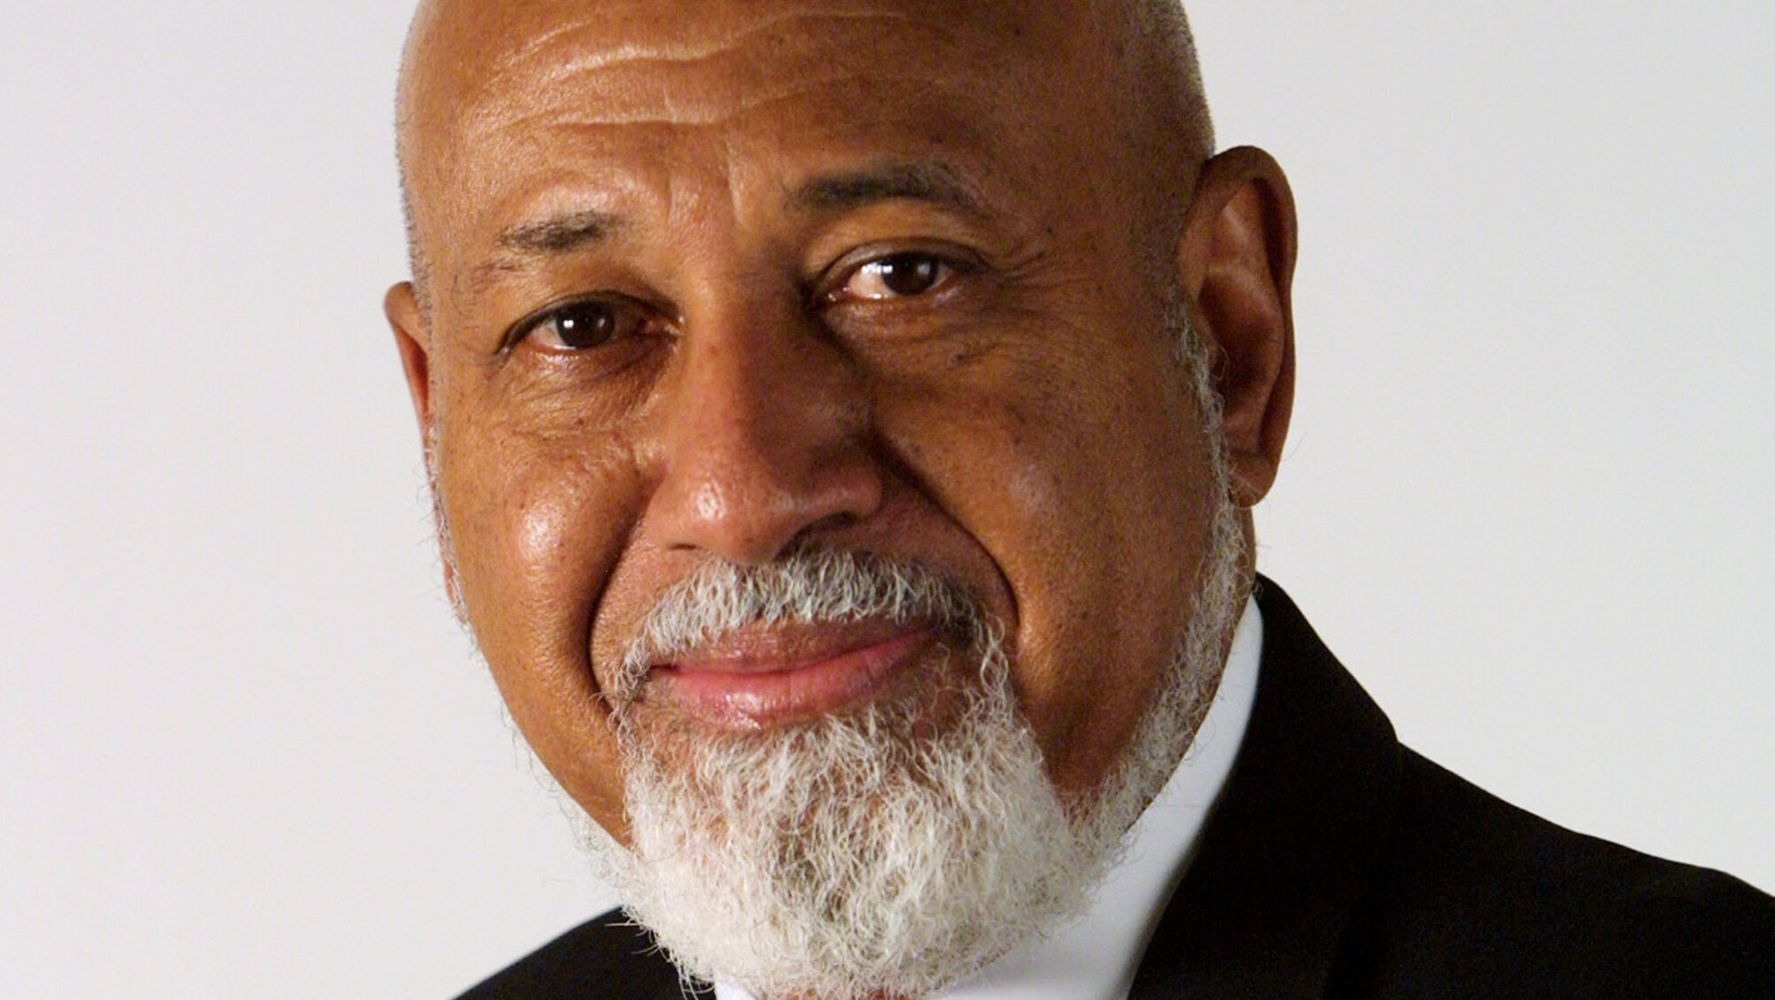 MSNBC Apologizes For Airing Wrong Video While Reporting On Rep. Alcee Hastings' Death